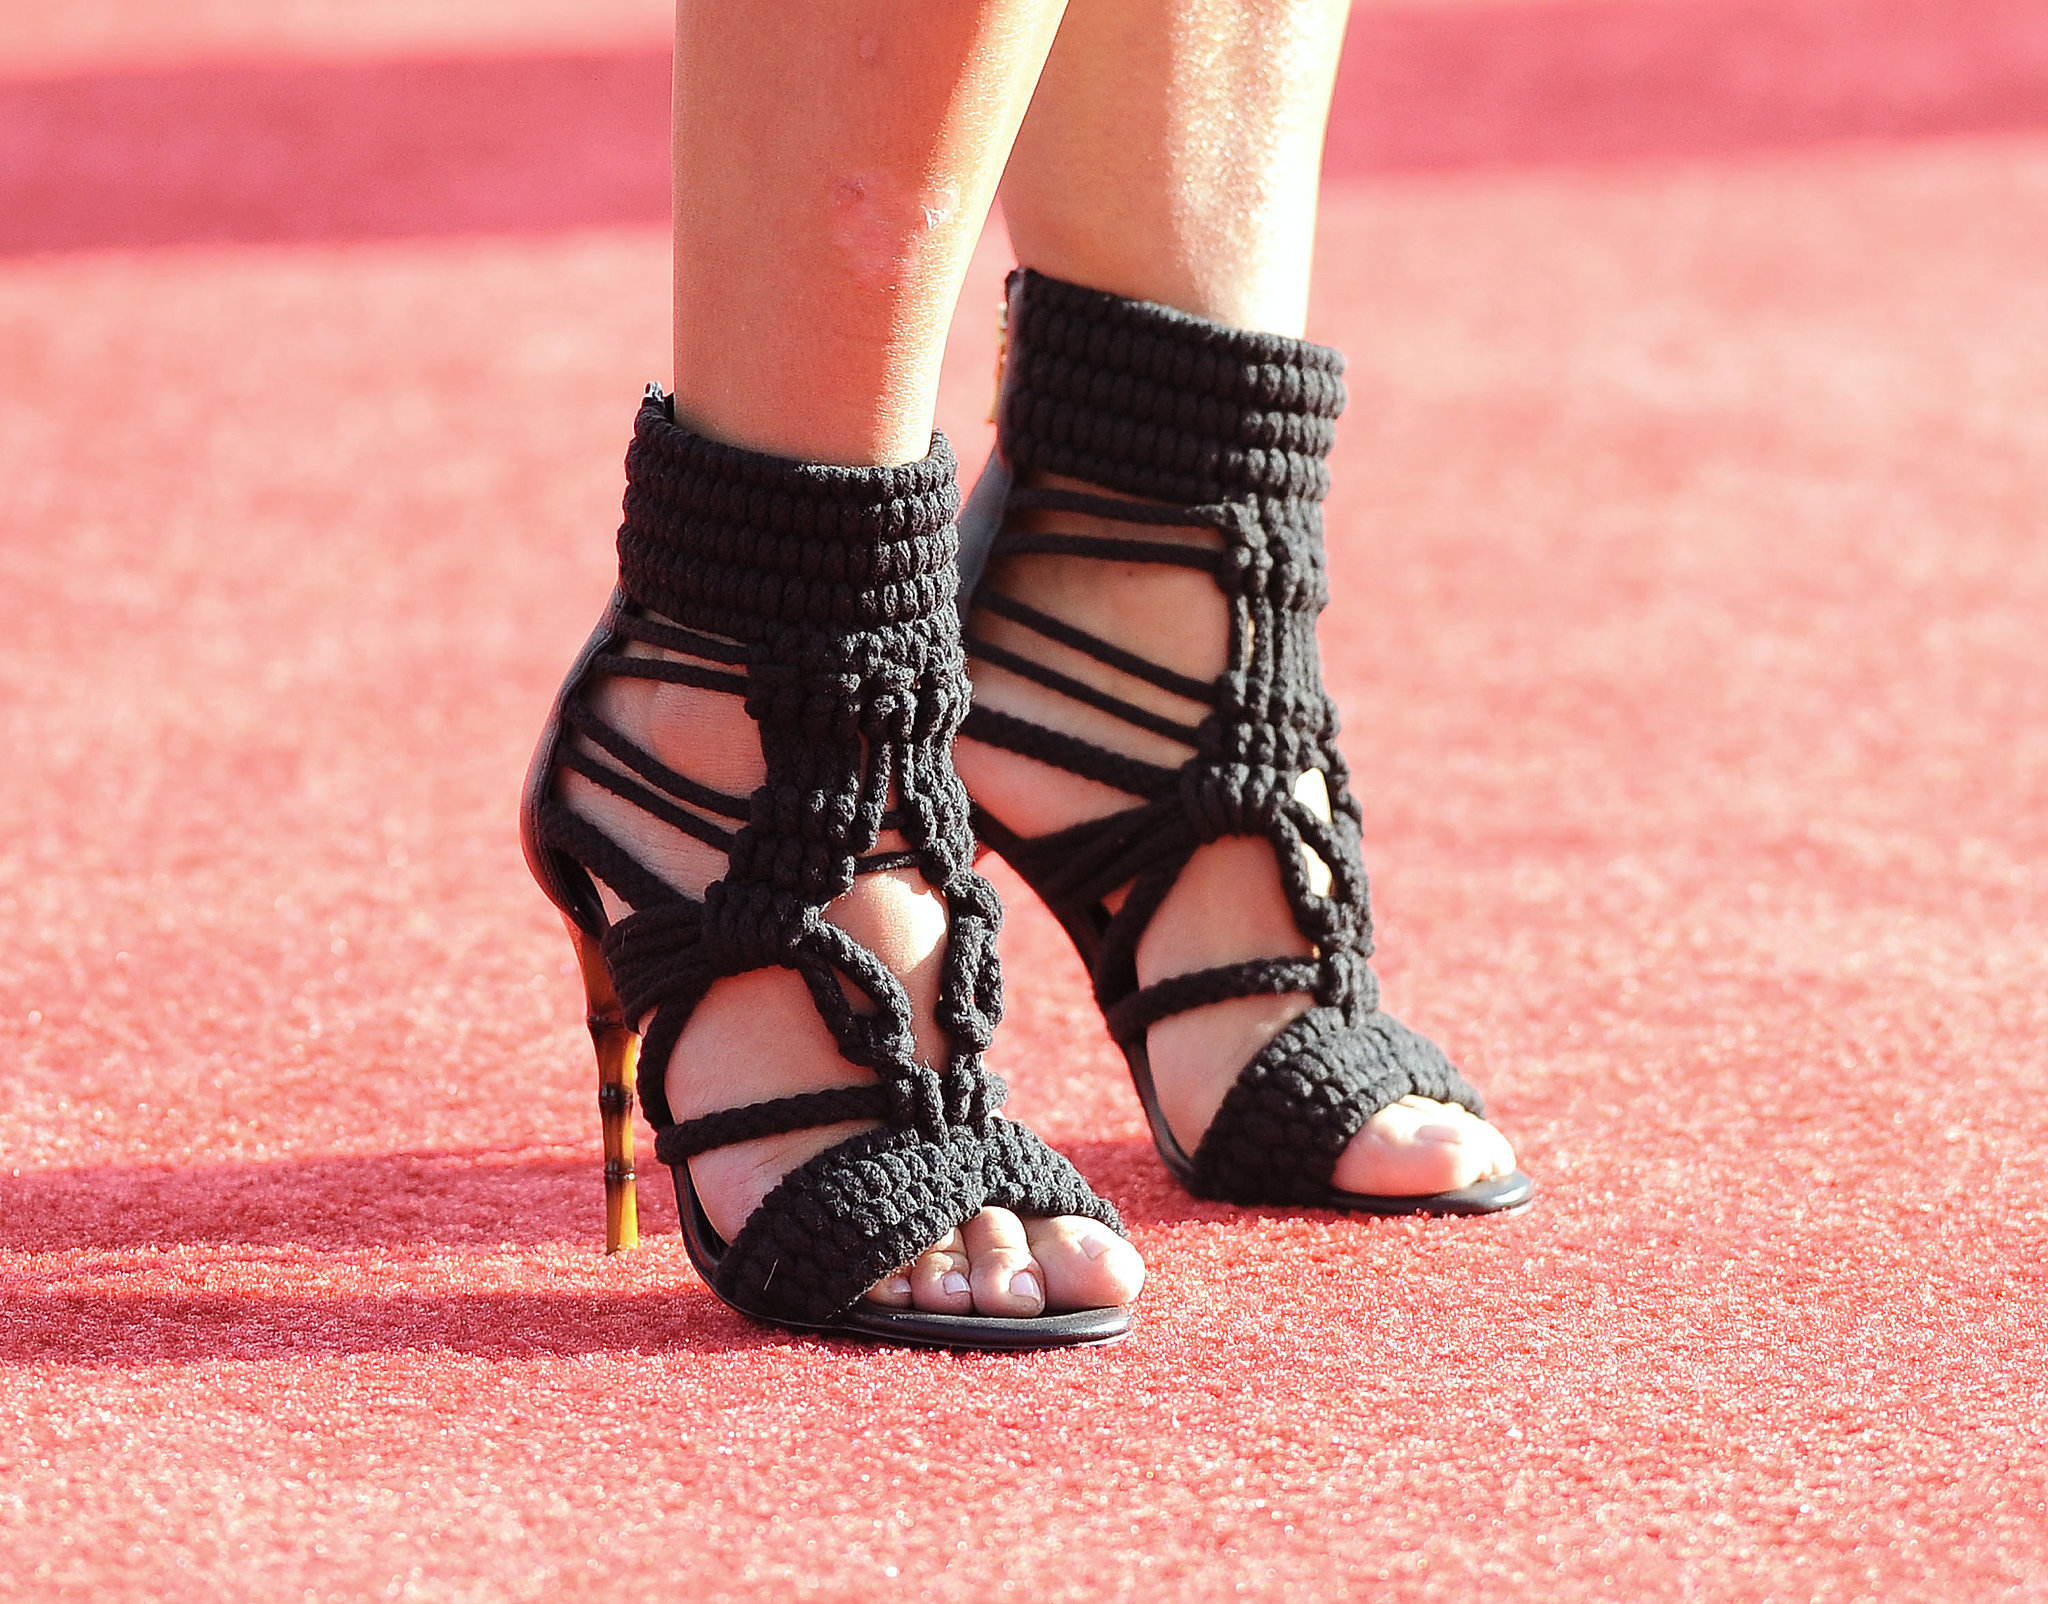 Kim Kardashian wore these amazing crocheted Balmain heels with her printed frock.